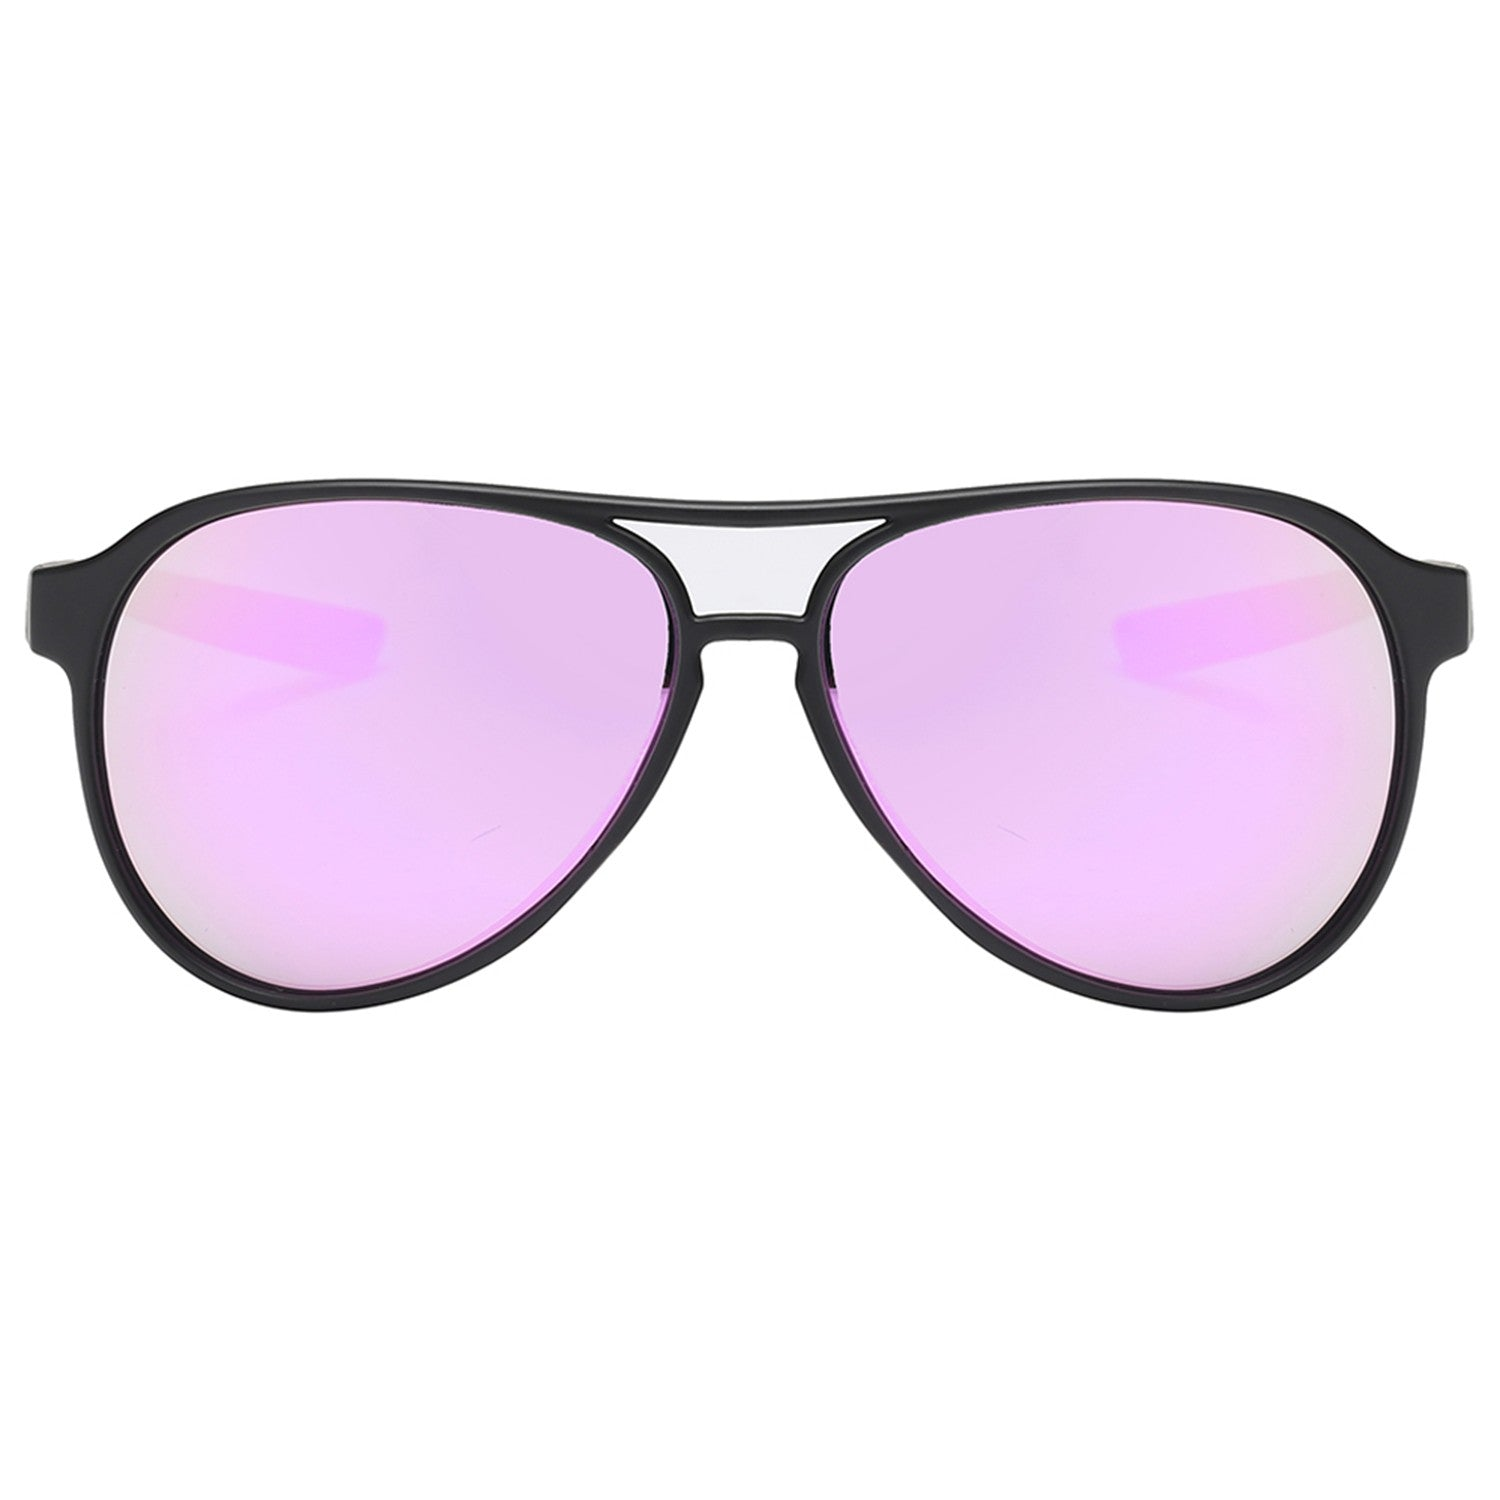 Polarspex Polarized Classic Ultar Lightweight Aviator Pilot Sunglasses with Matte Black Frames and Polarized Amethyst Lenses for Men and Women